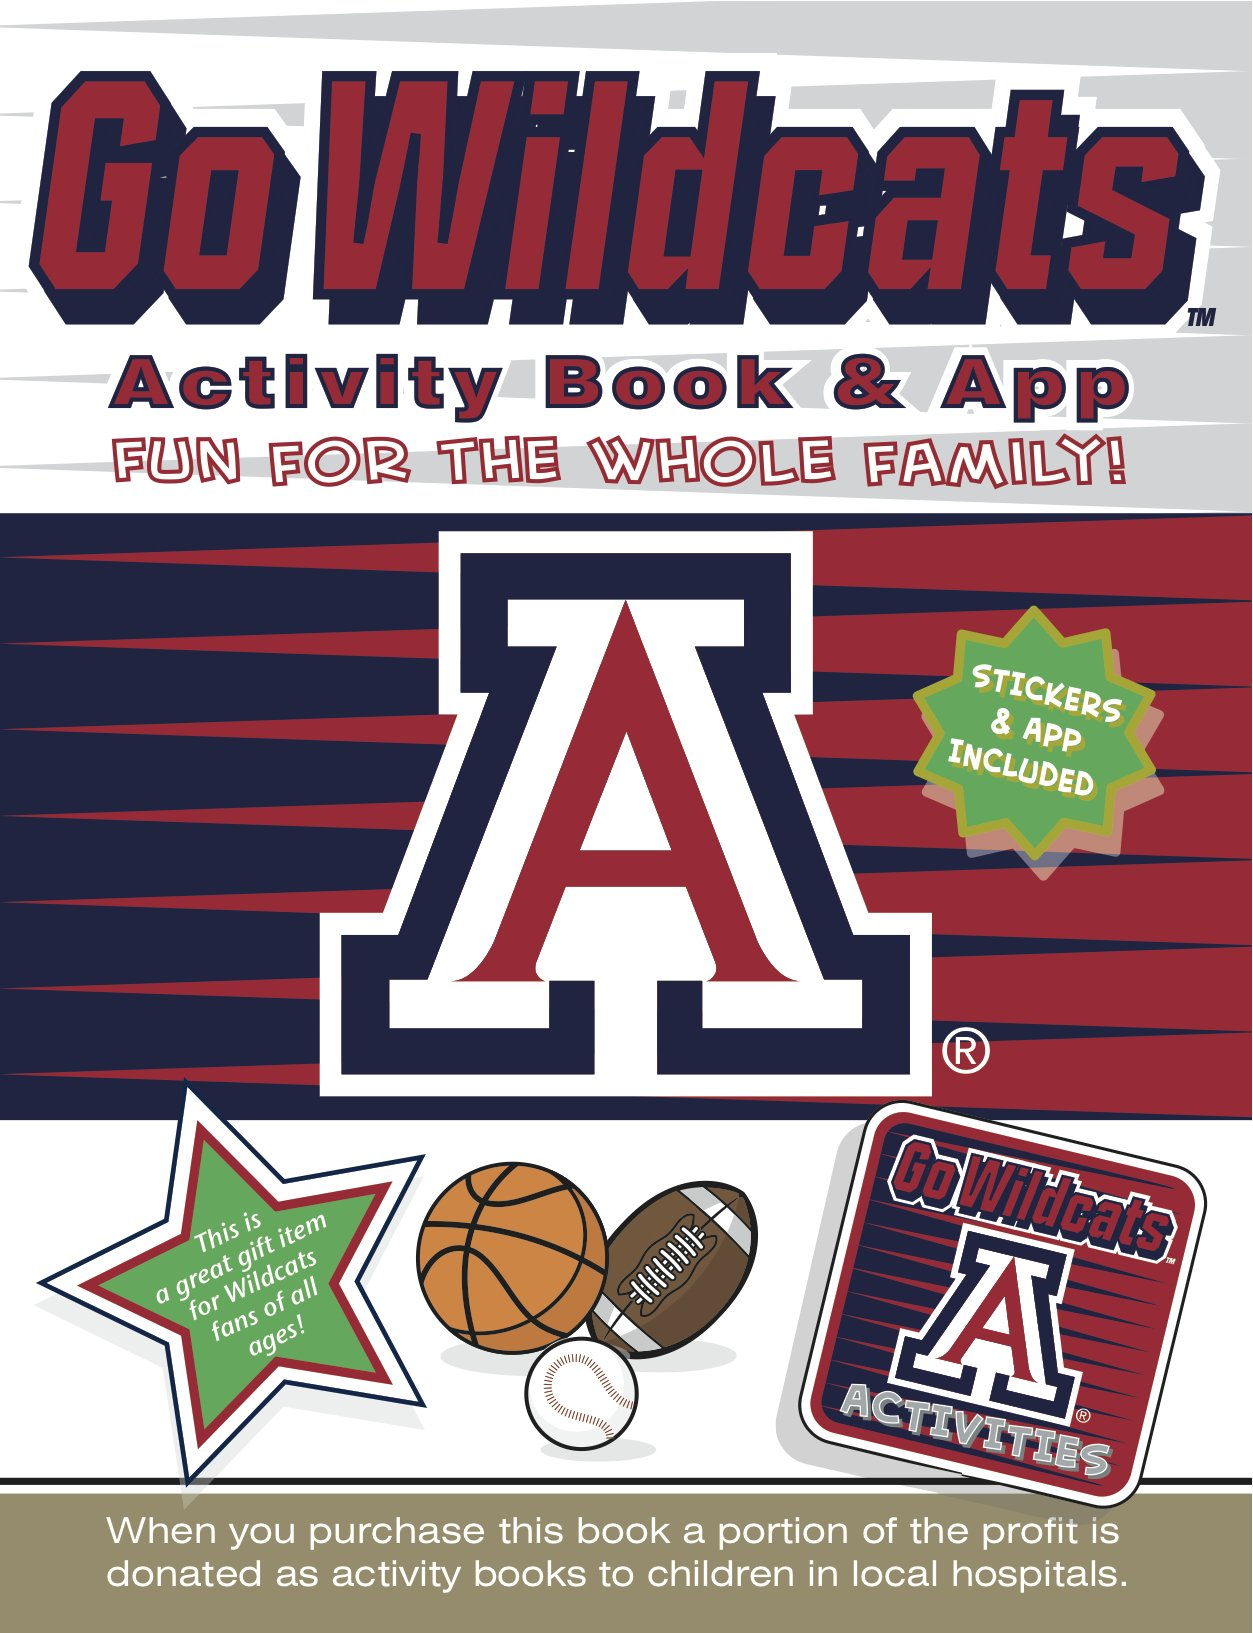 Cover image of Go Wildcats Activity Book & App